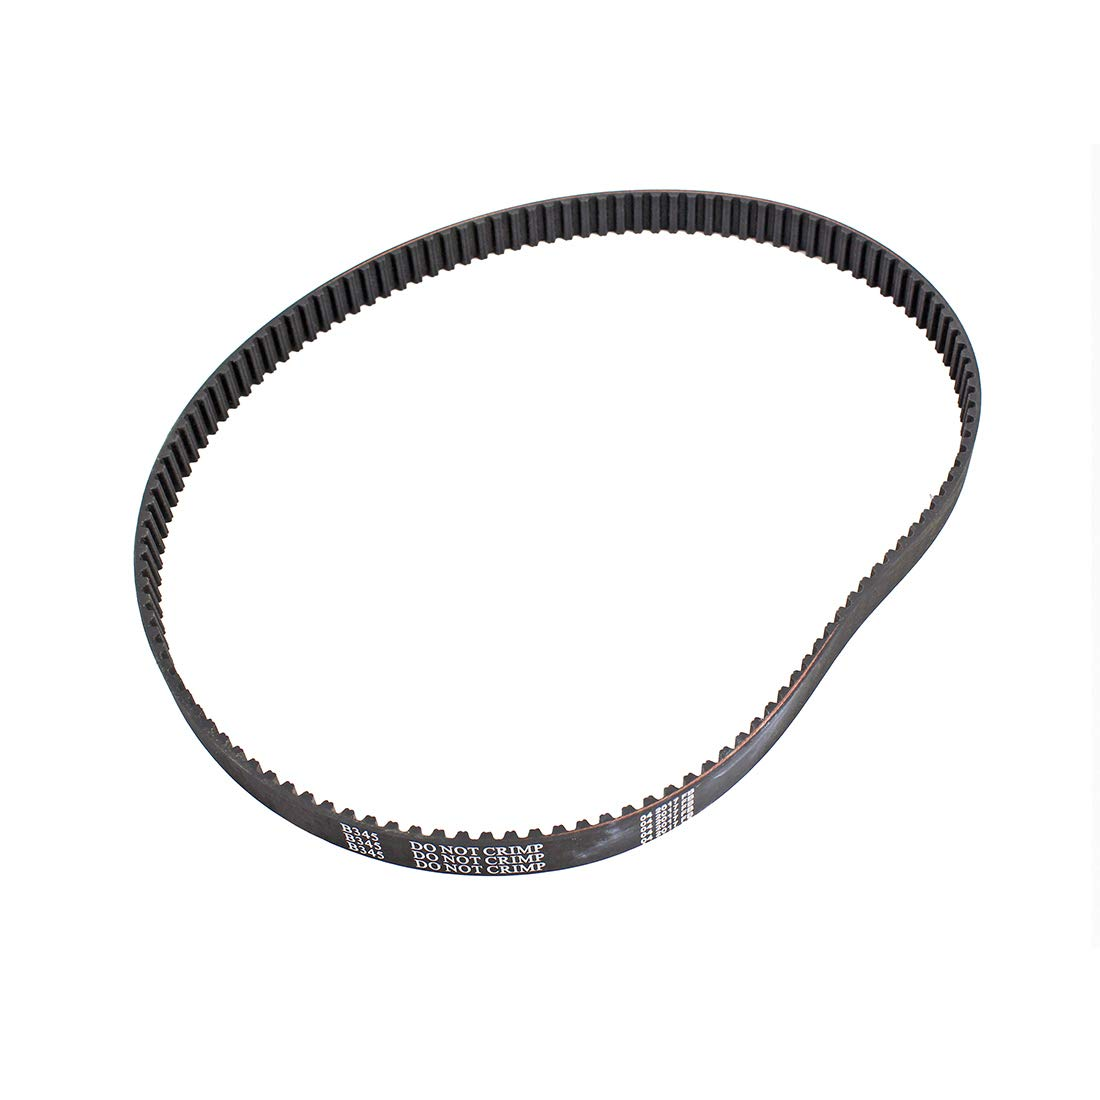 Dart 500L Jeep // 500 DNJ TB4254 Timing Belt for 2012-2015 // Dodge Renegade // 1.4L // SOHC // L4 // 16V // 83cid // VIN H Fiat